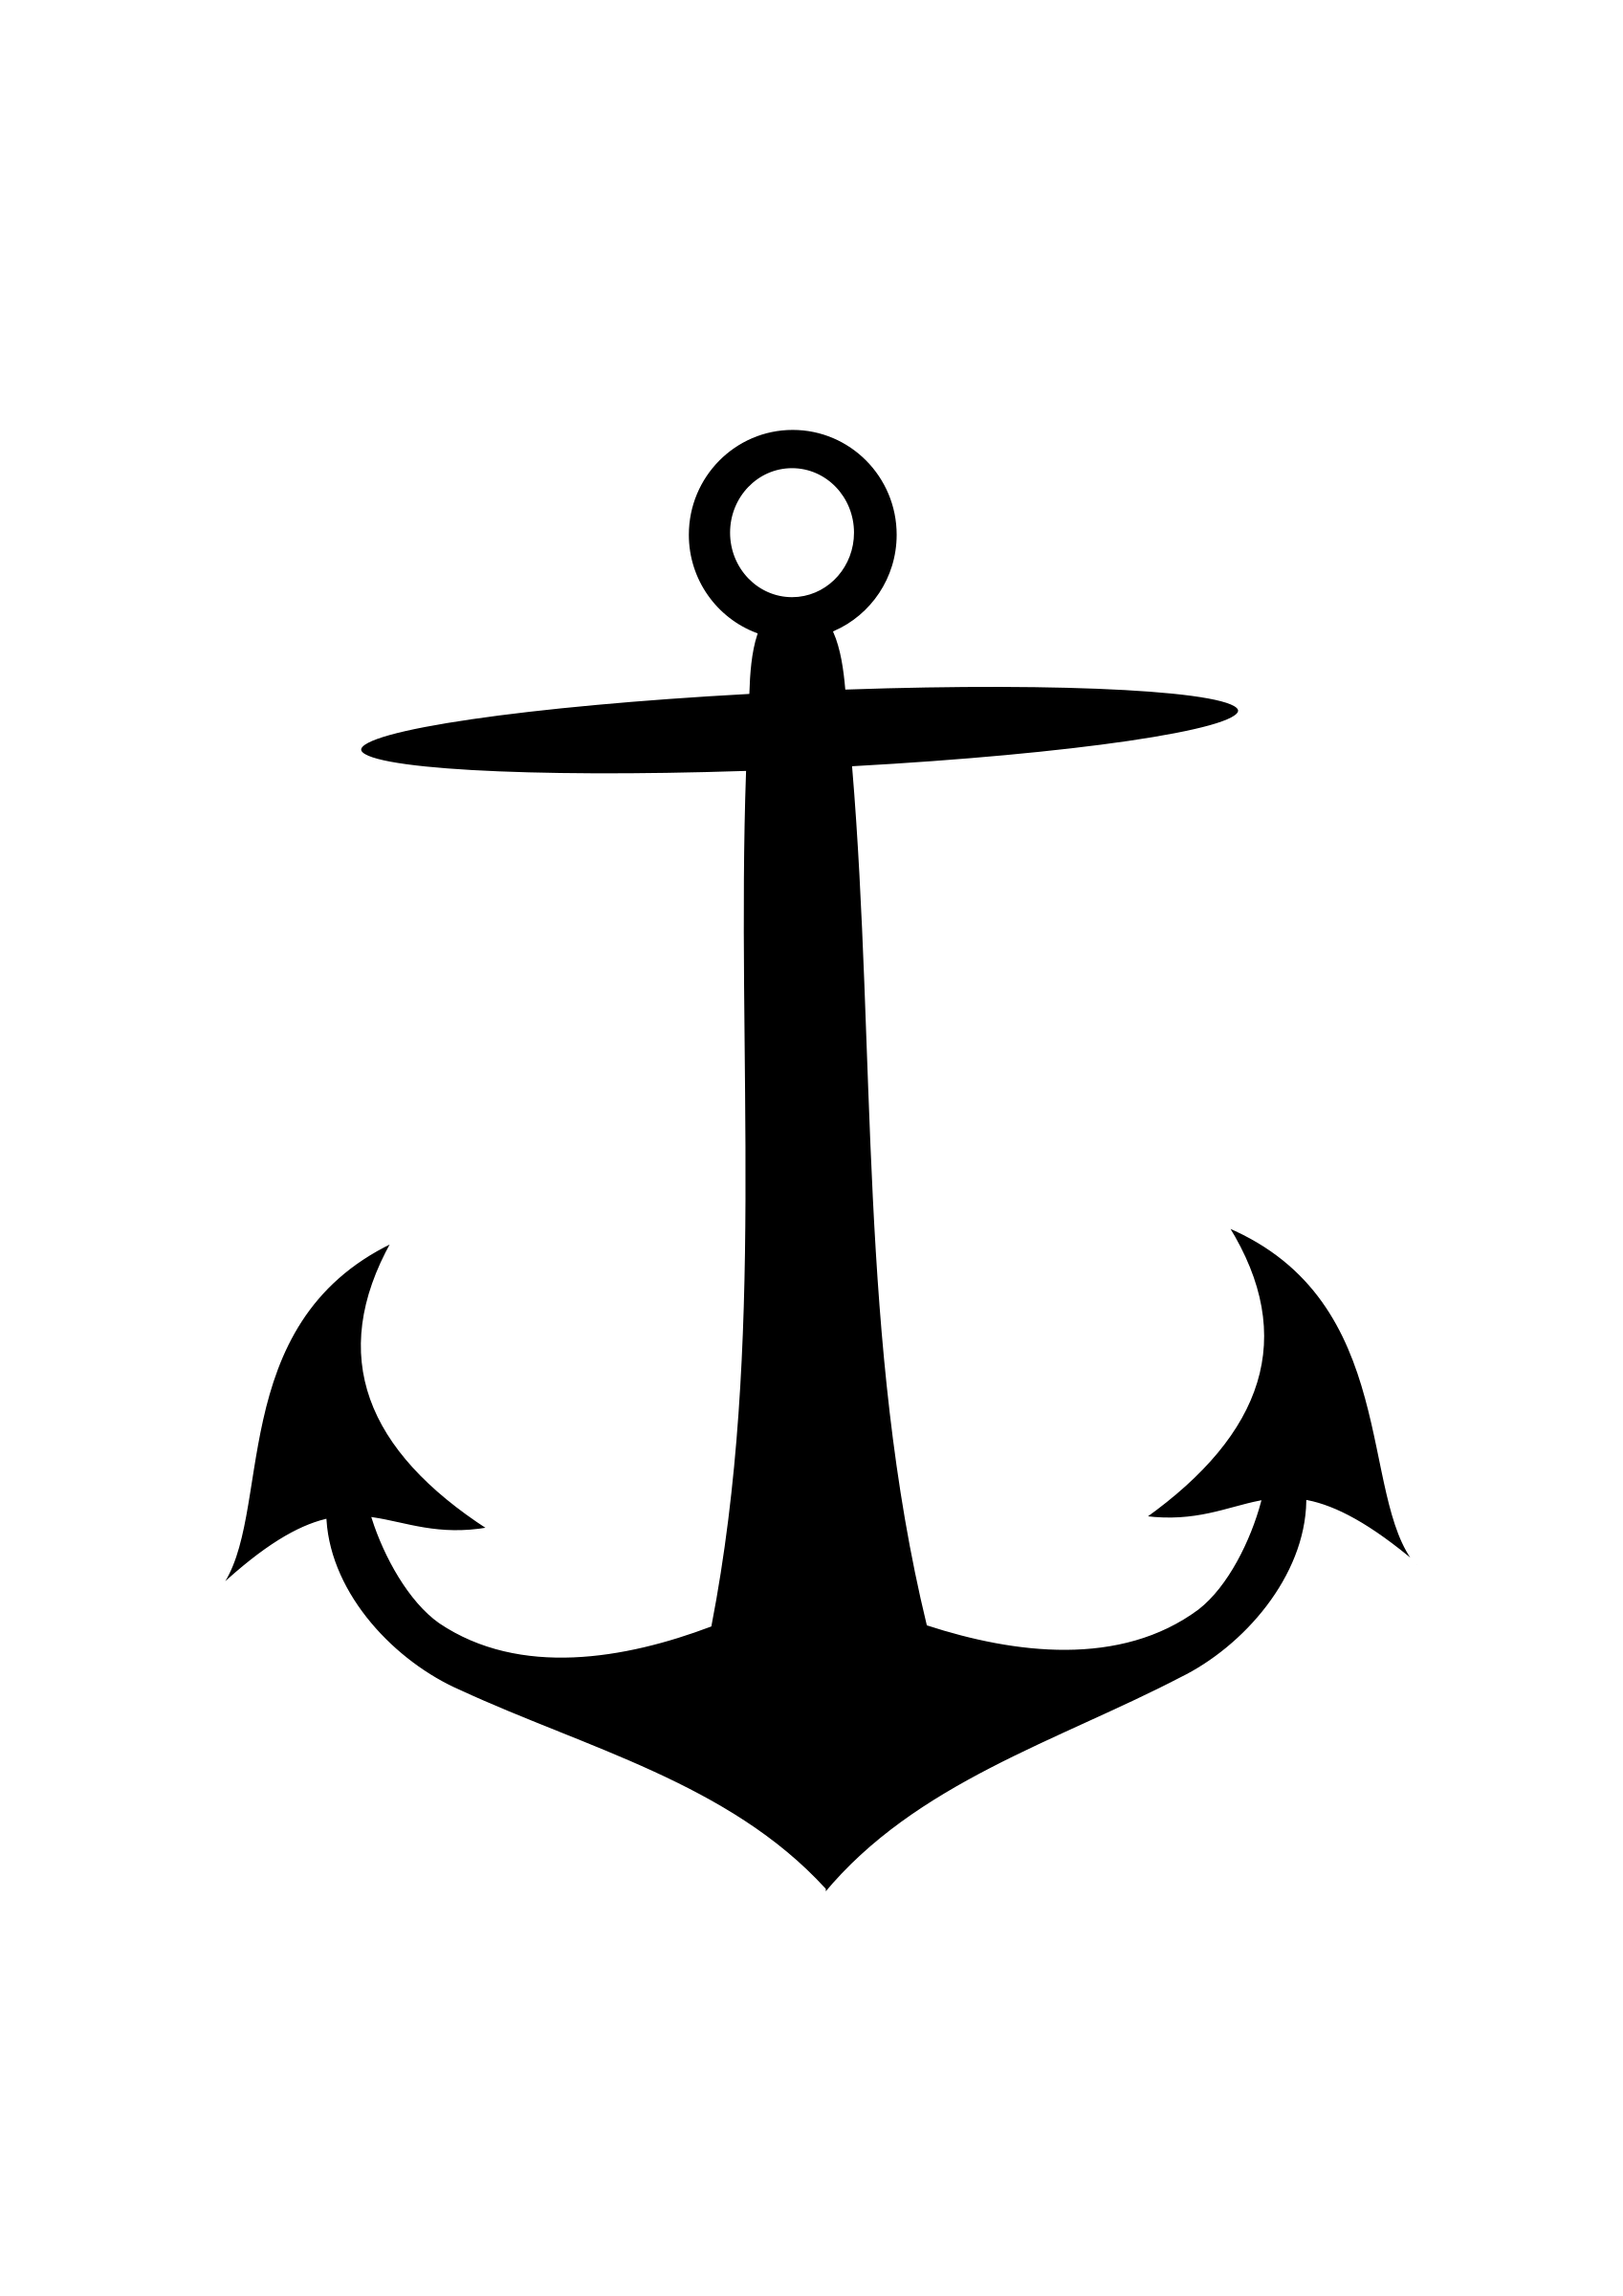 Clipart anchor black and white.